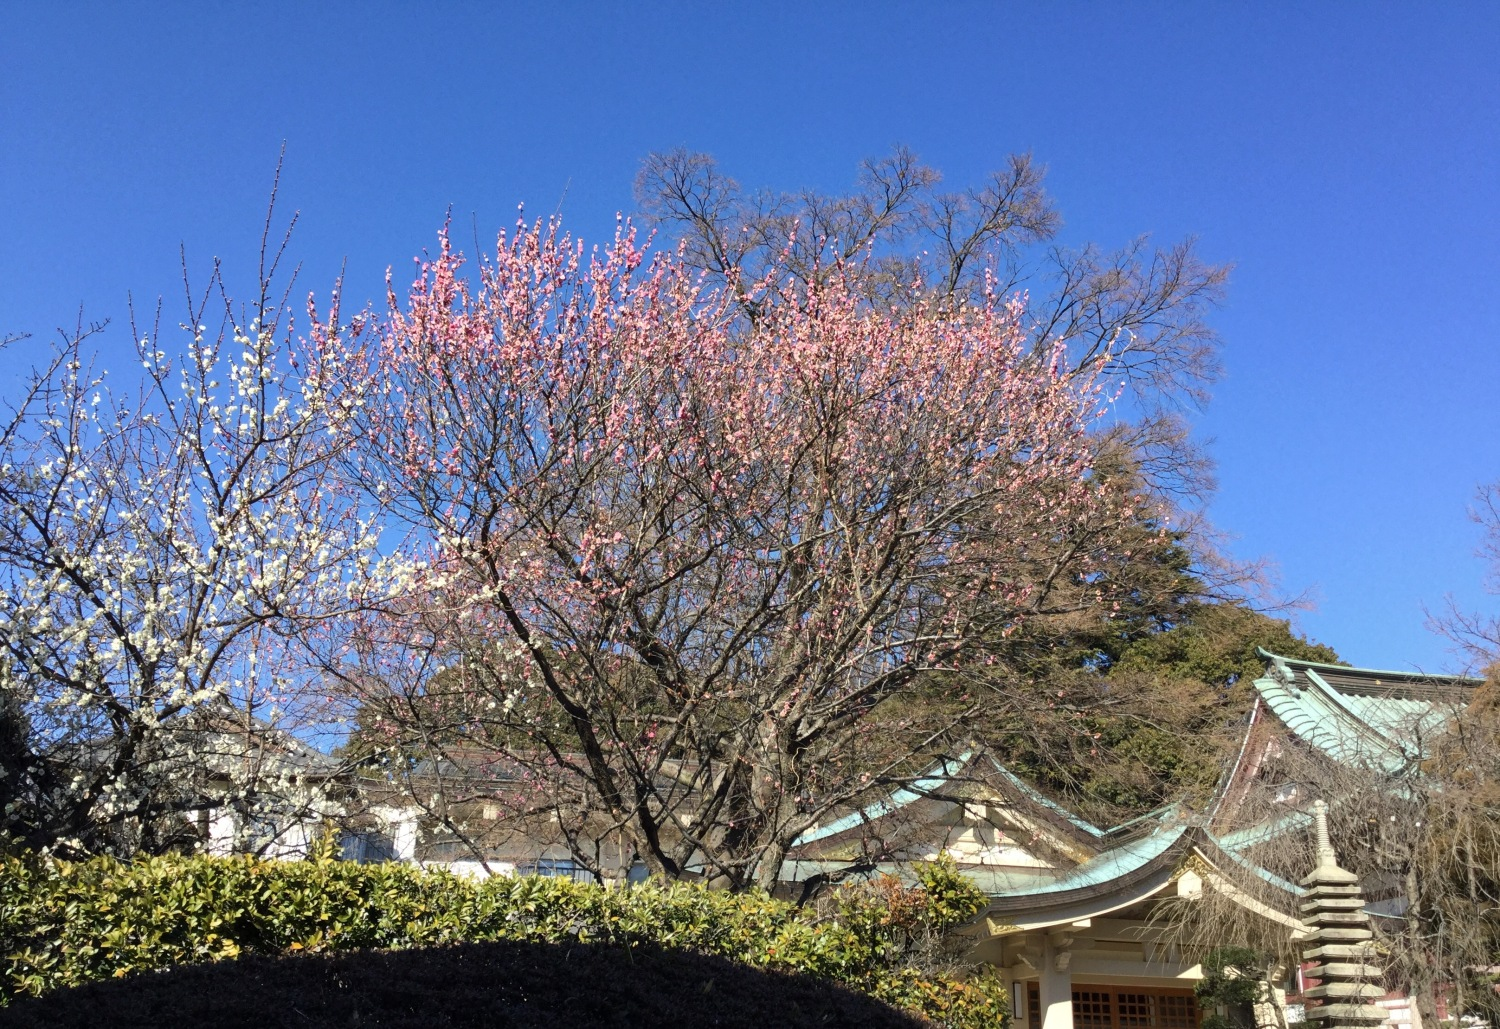 Japanese apricot with red blossoms and white plum blossoms of the House of practice asceticism on a high mountain